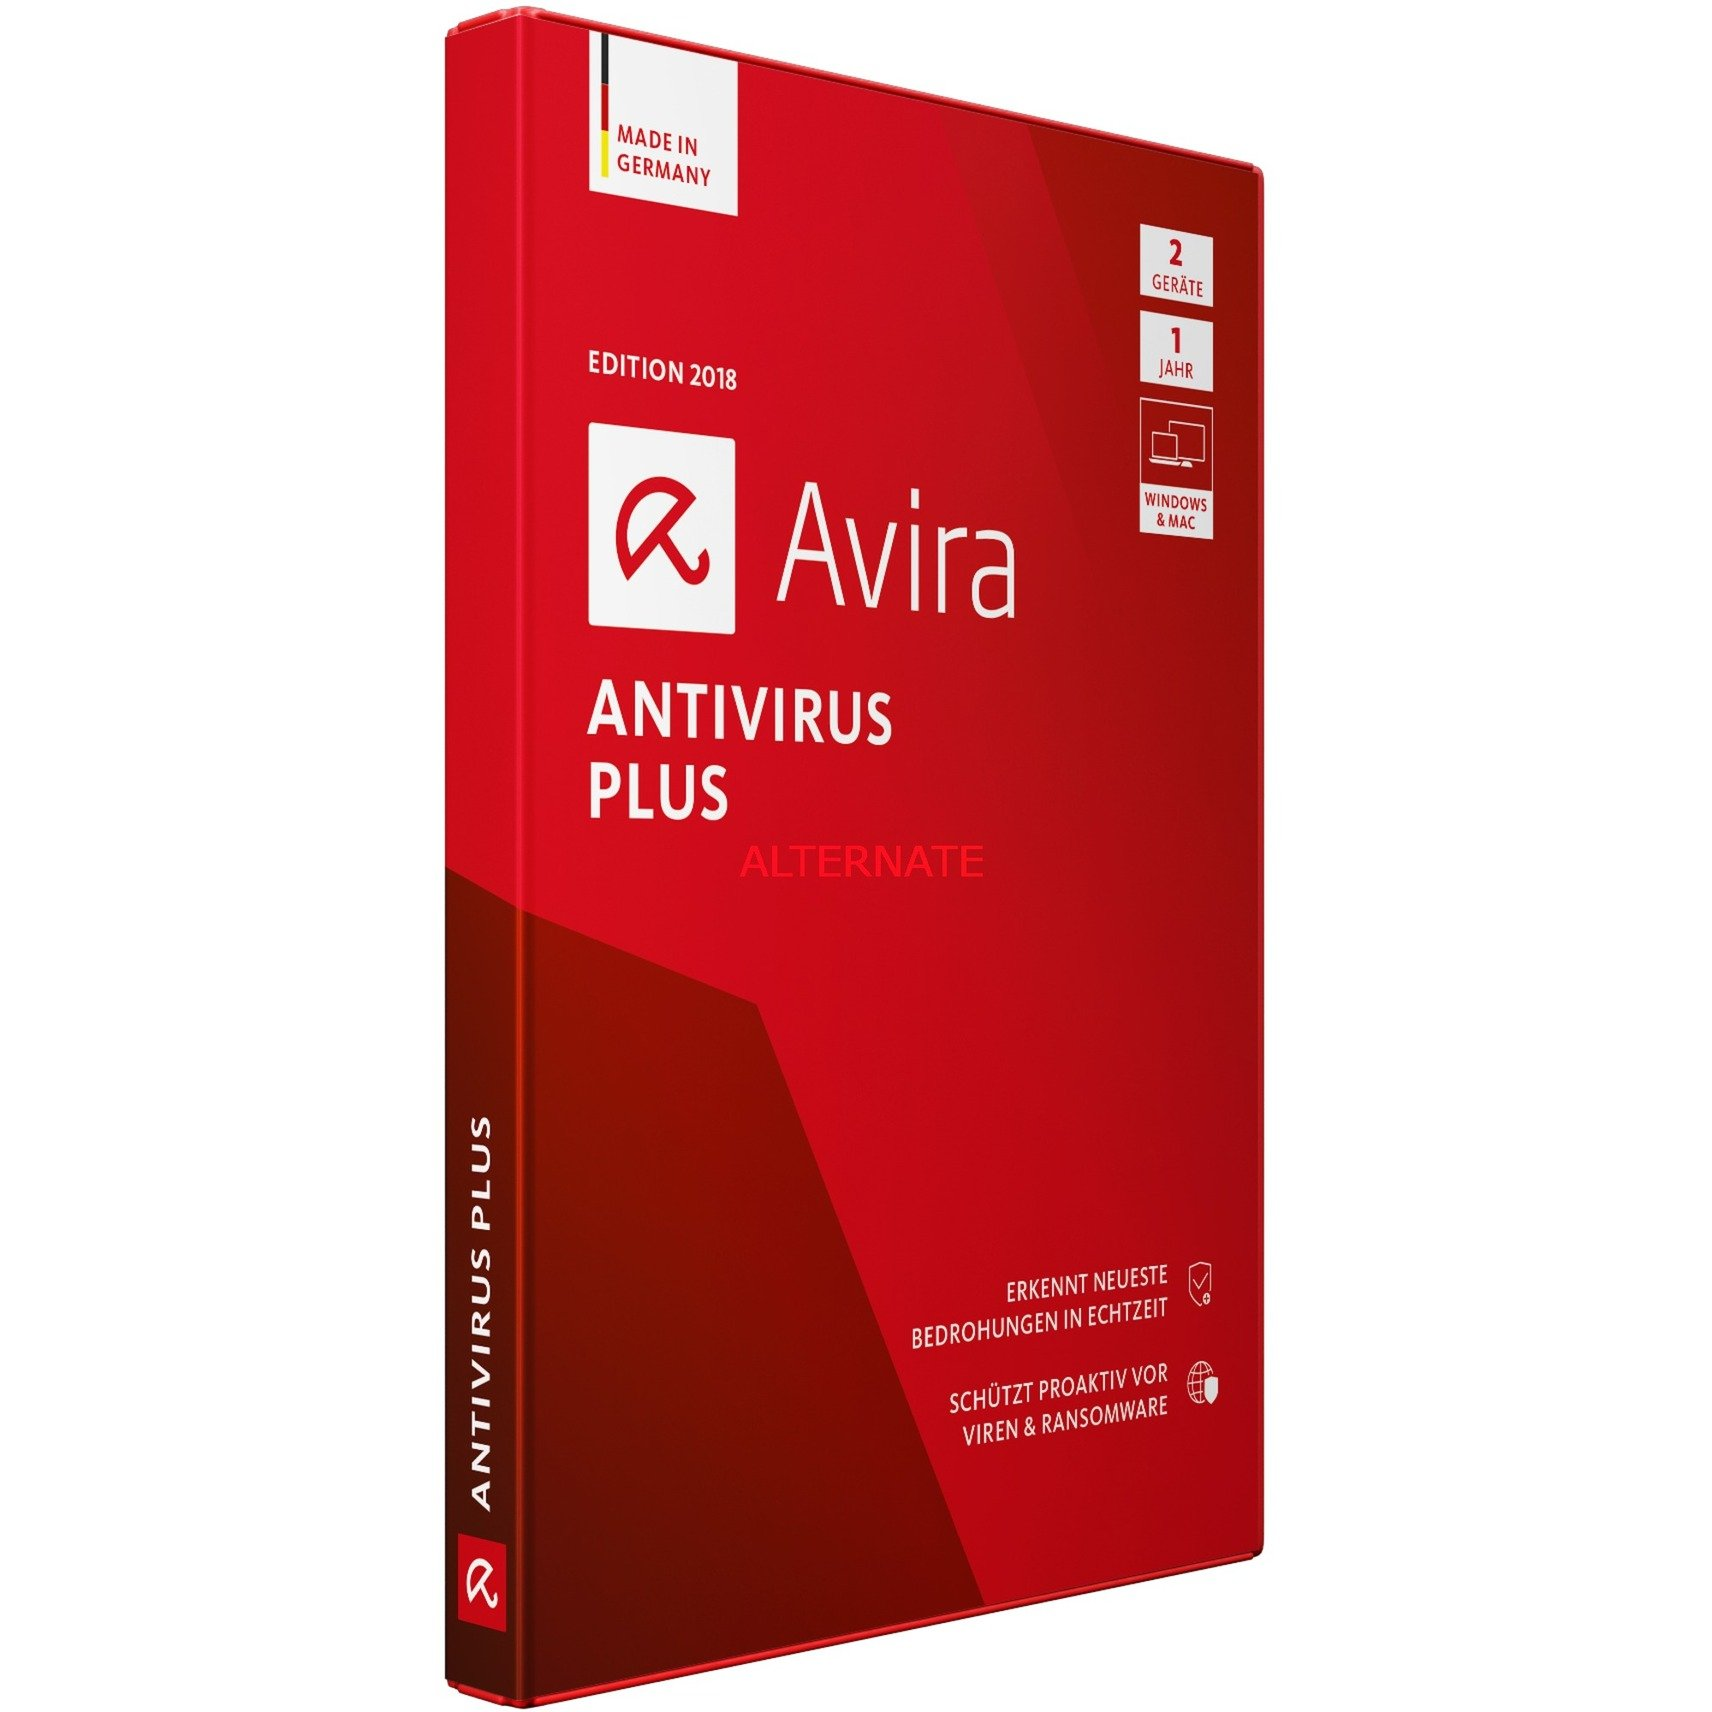 AntiVirus Plus 2018 2usuario(s) Full license Alemán, Software